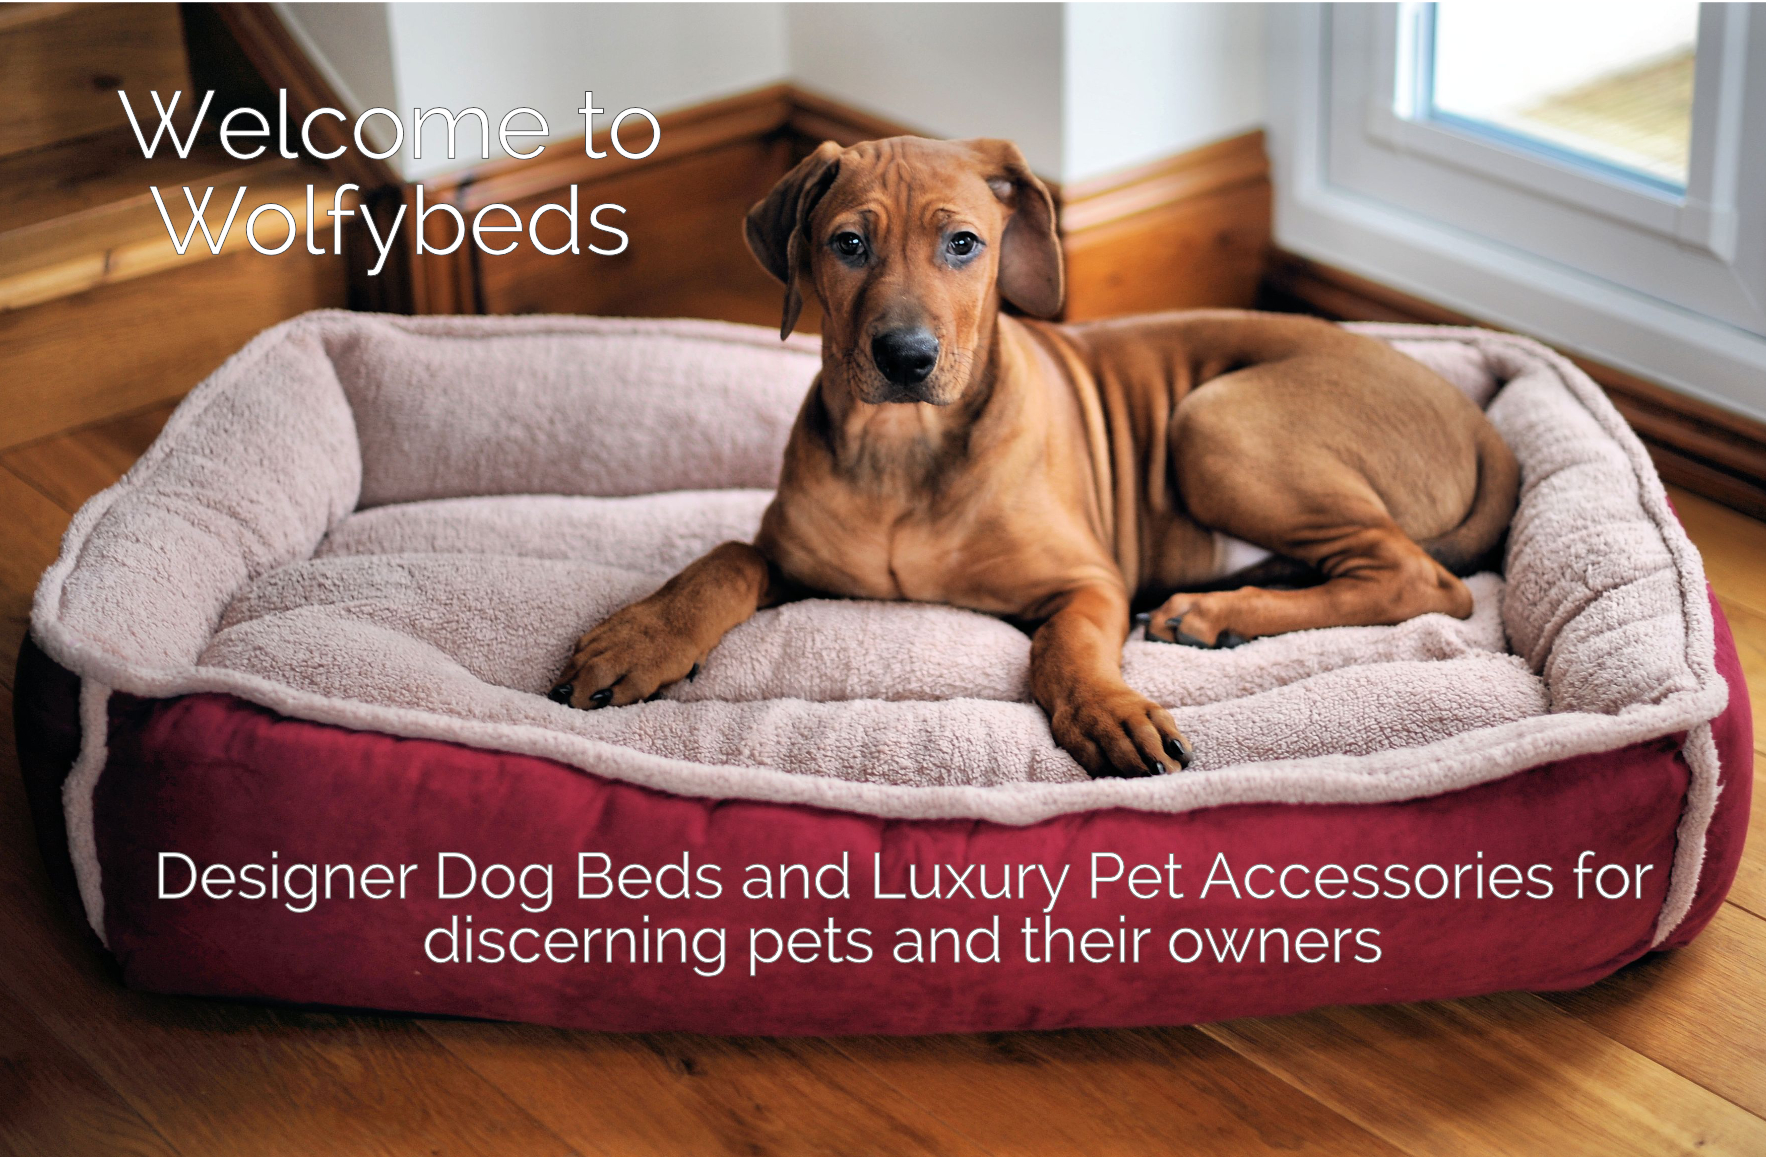 designer dog bed furniture. Welcome To WolfyBeds Designer Dog Beds And Luxury Pet Accessories For Discerning Pets Their Owners Show Me More Bed Furniture